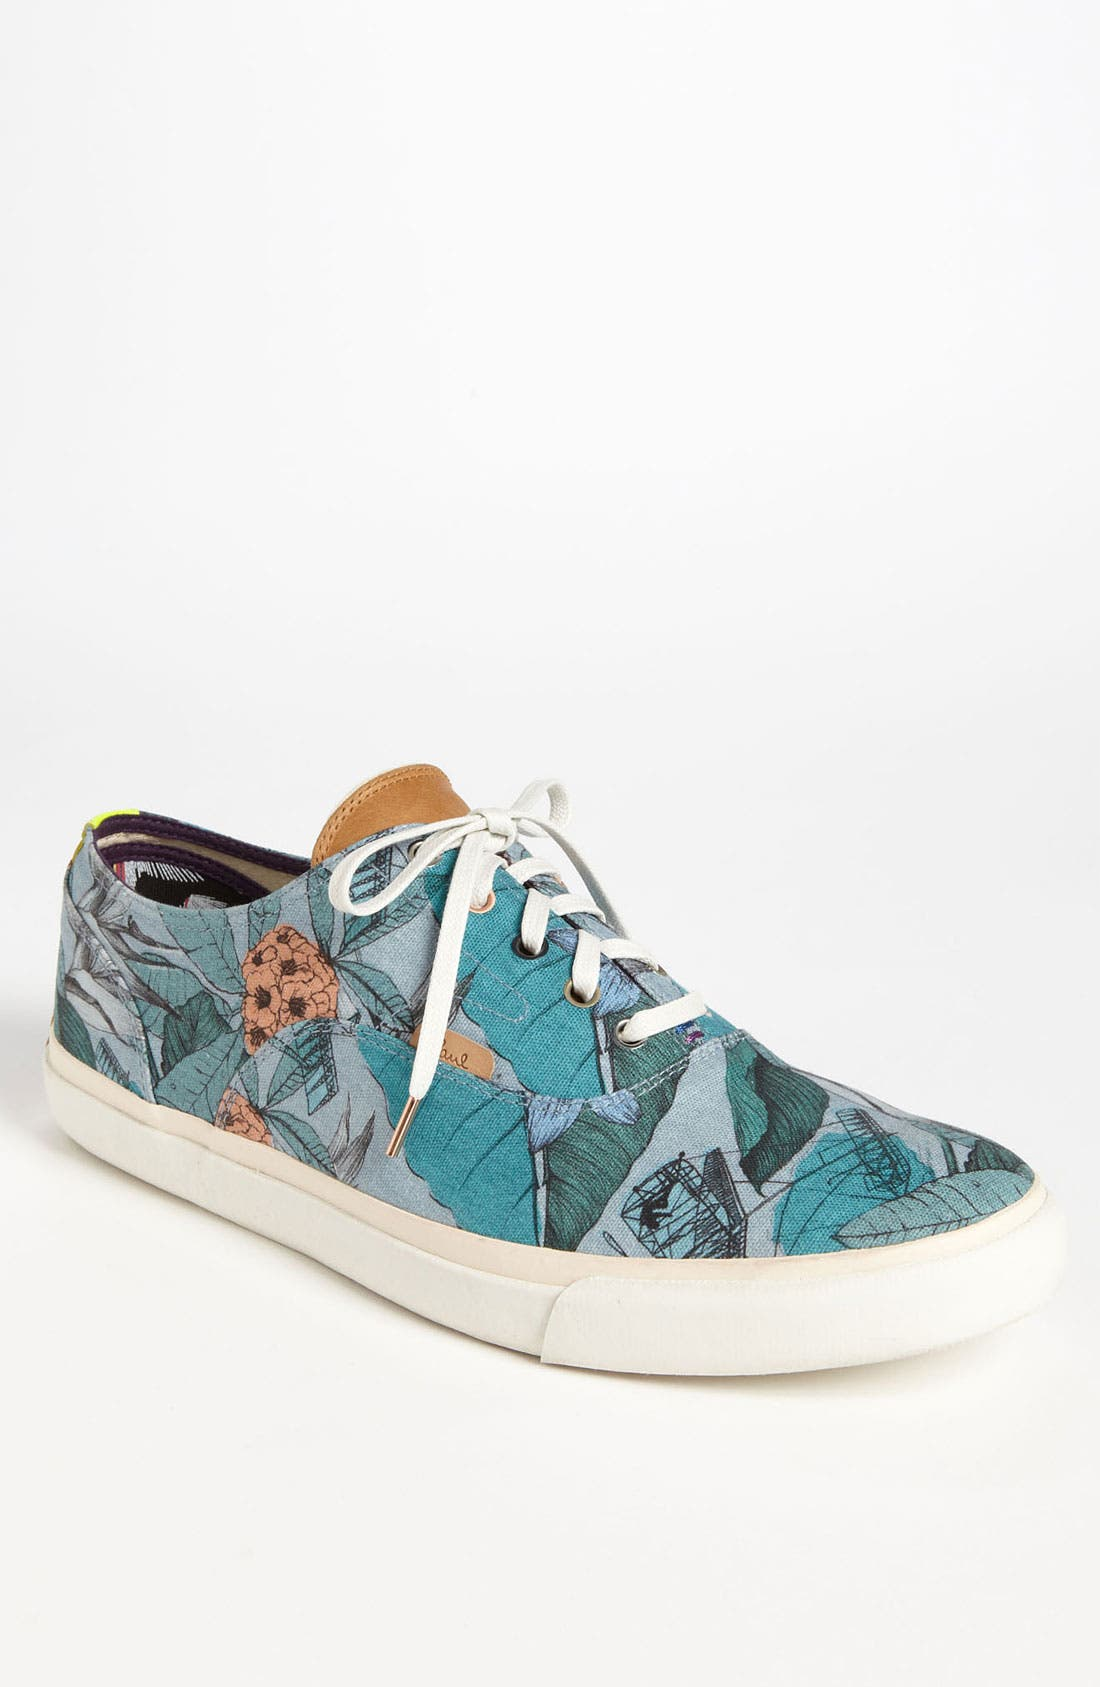 Alternate Image 1 Selected - Paul Smith 'Balfour' Print Sneaker